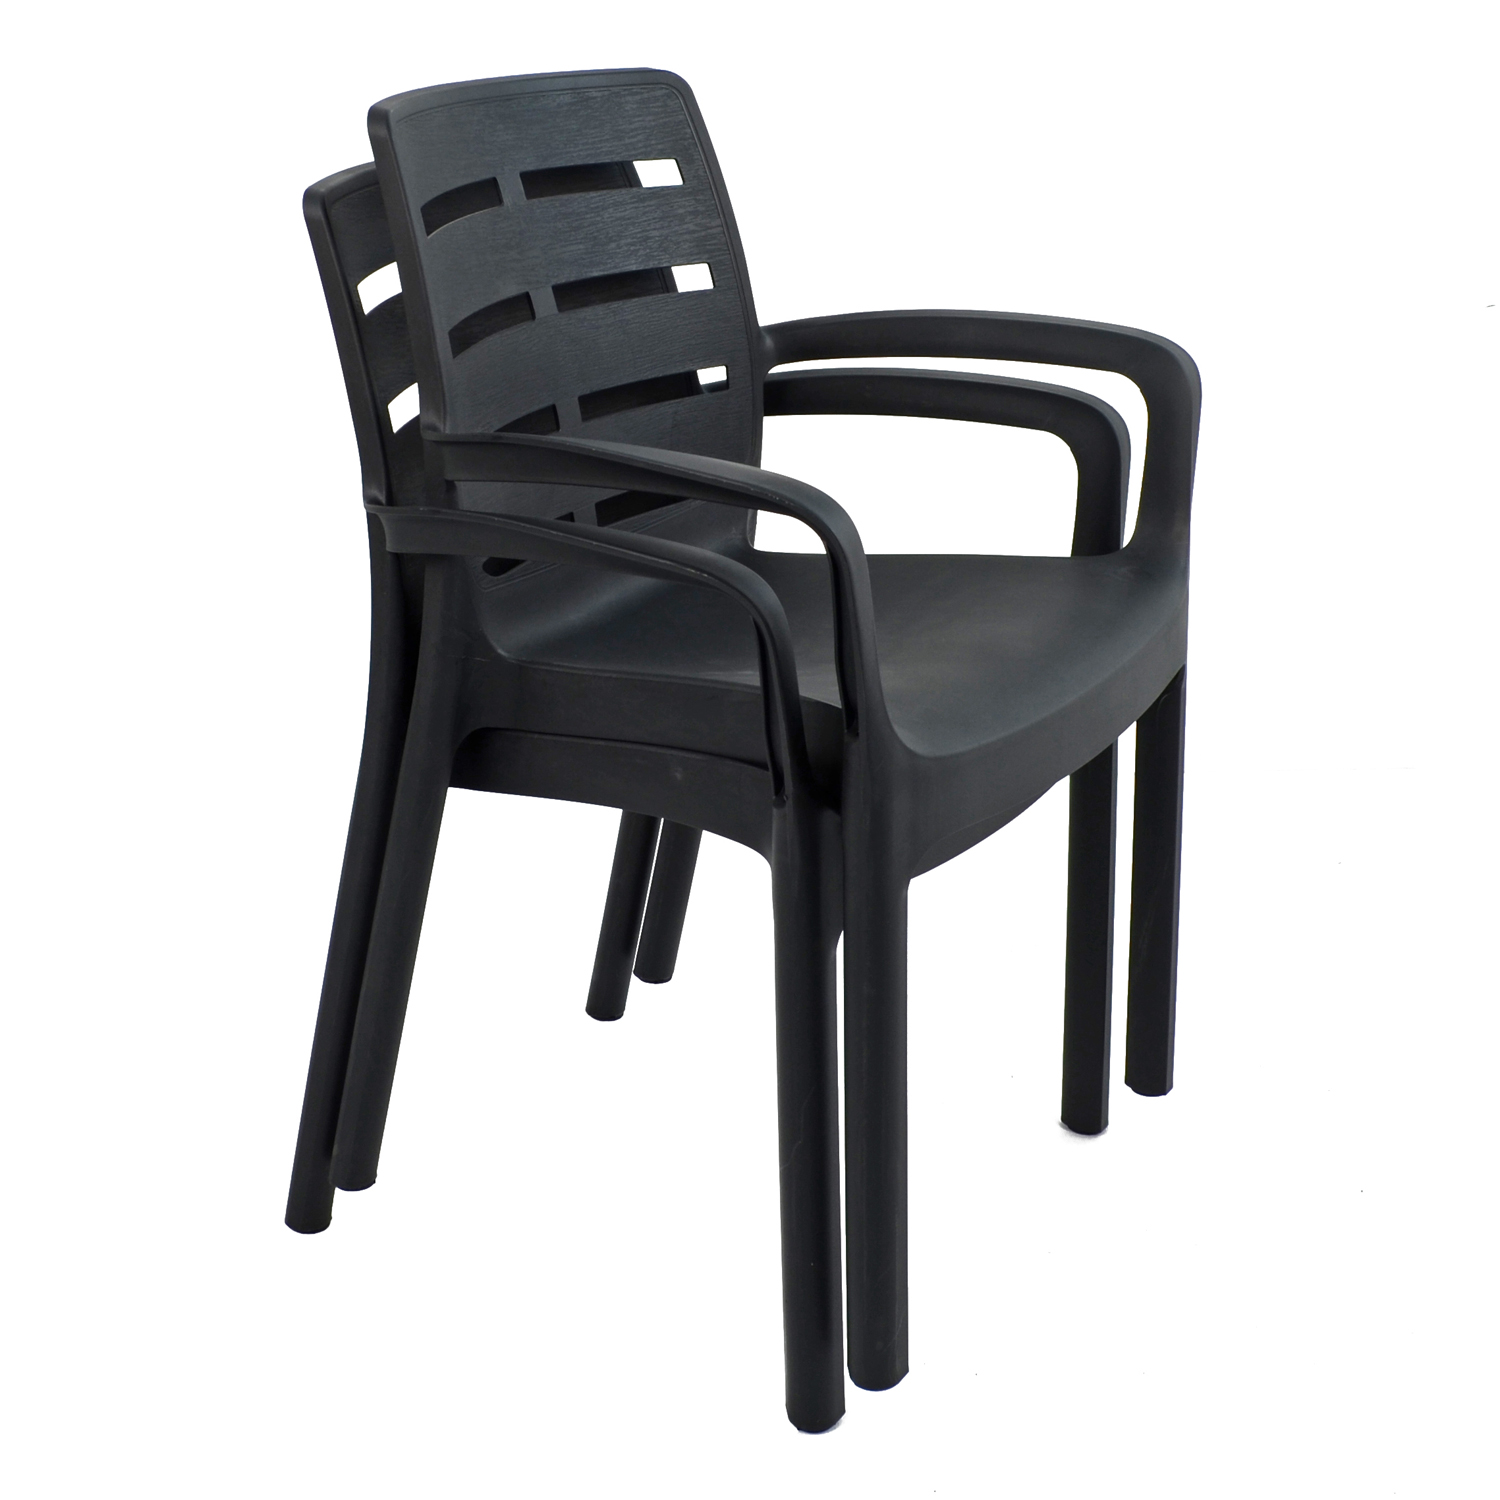 SIENA CHAIR ANTHRACITE PACK OF 2